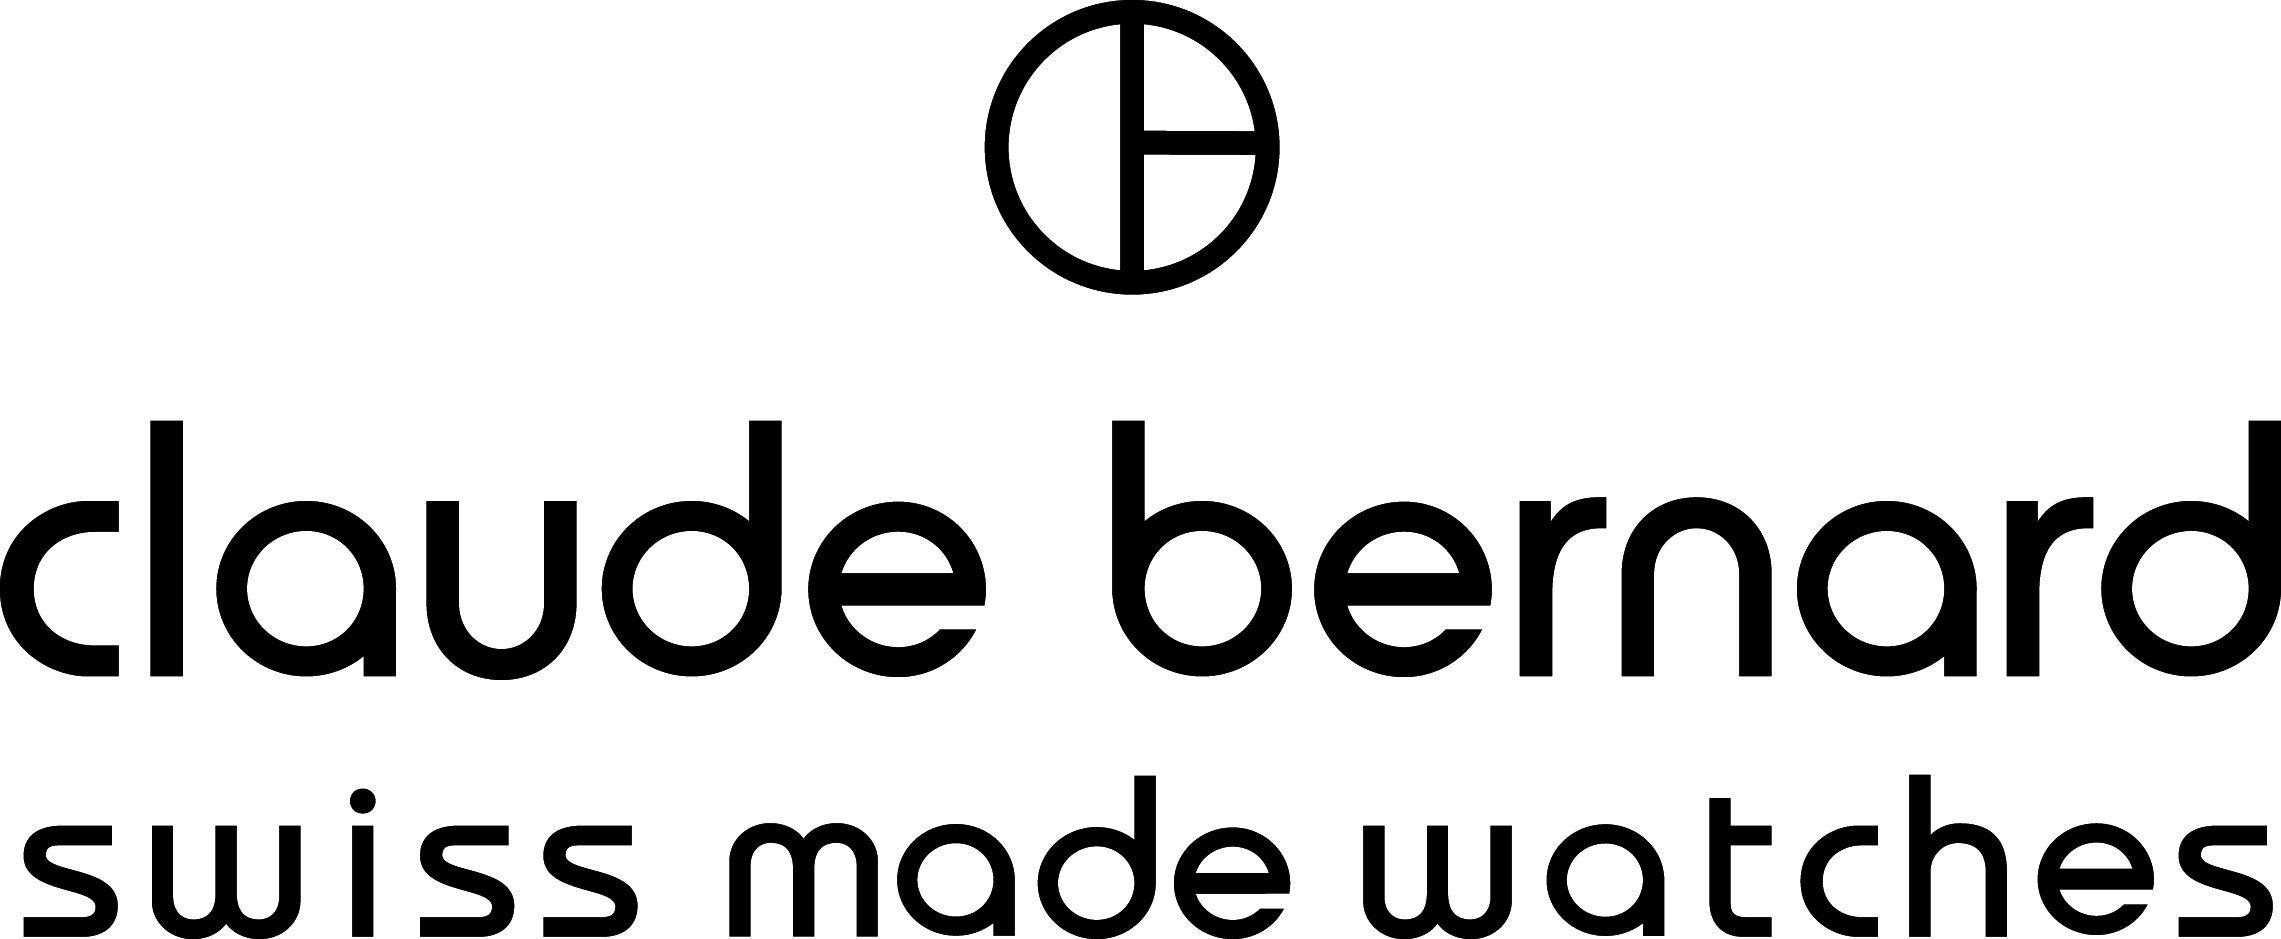 Order your original replacement Claude Bernard watch straps at Watchstraps-batteries.com